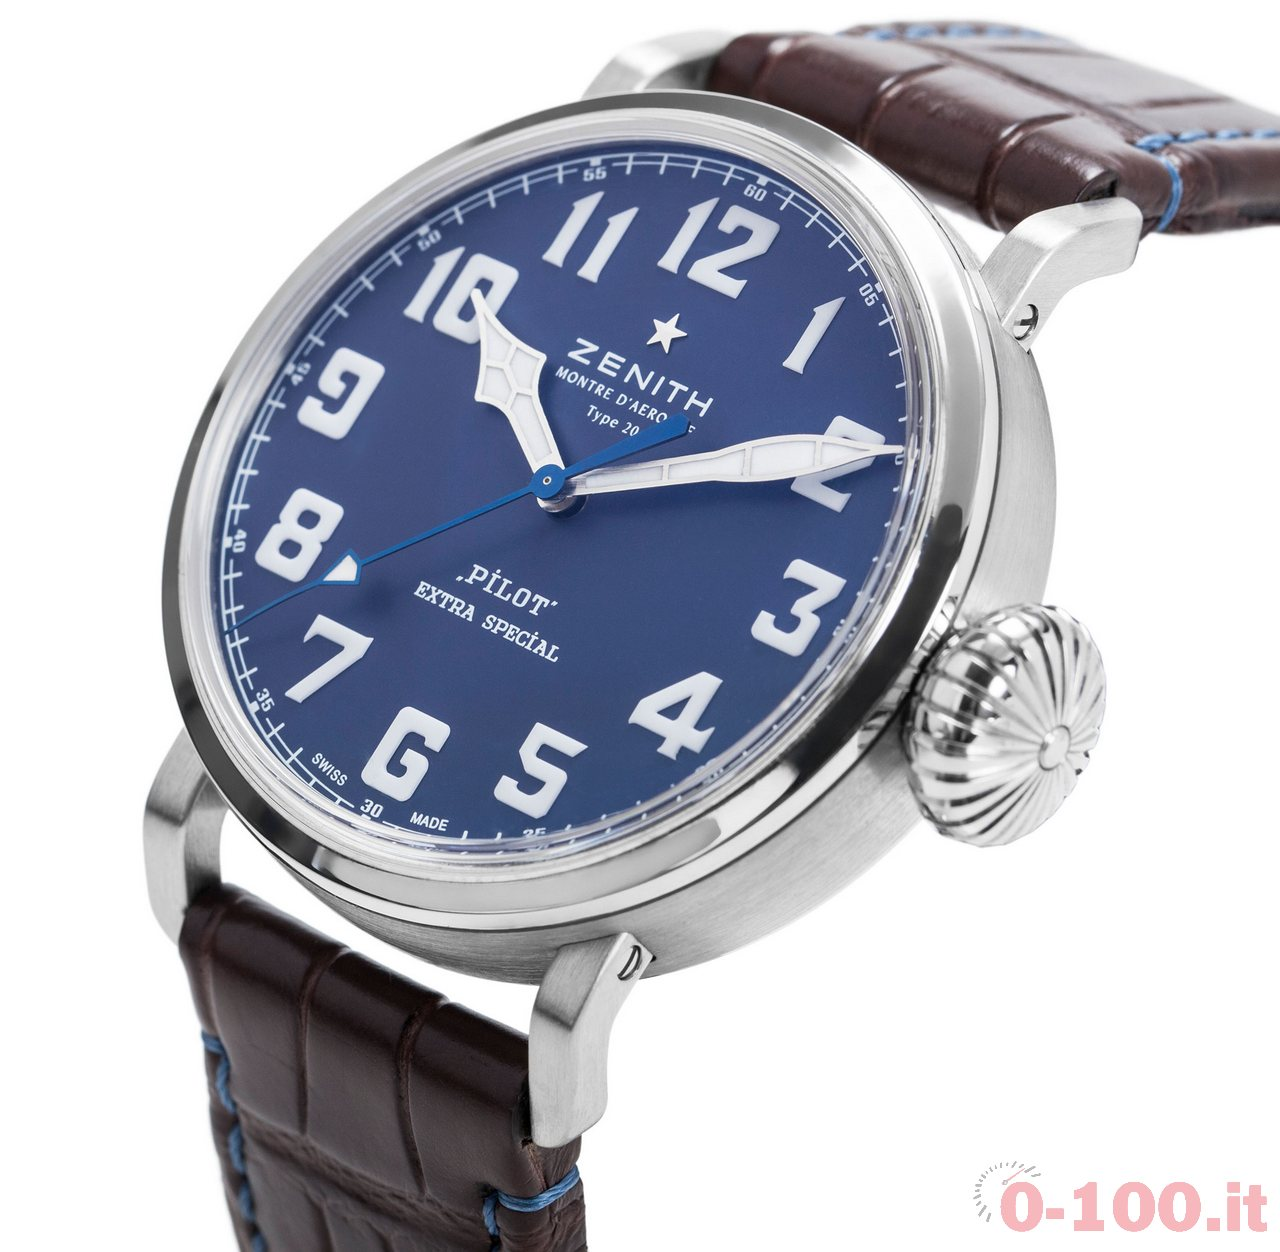 zenith-pilot-type-20-extra-special-blue-limited-edition-the-watch-gallery-prezzo-price_0-1001